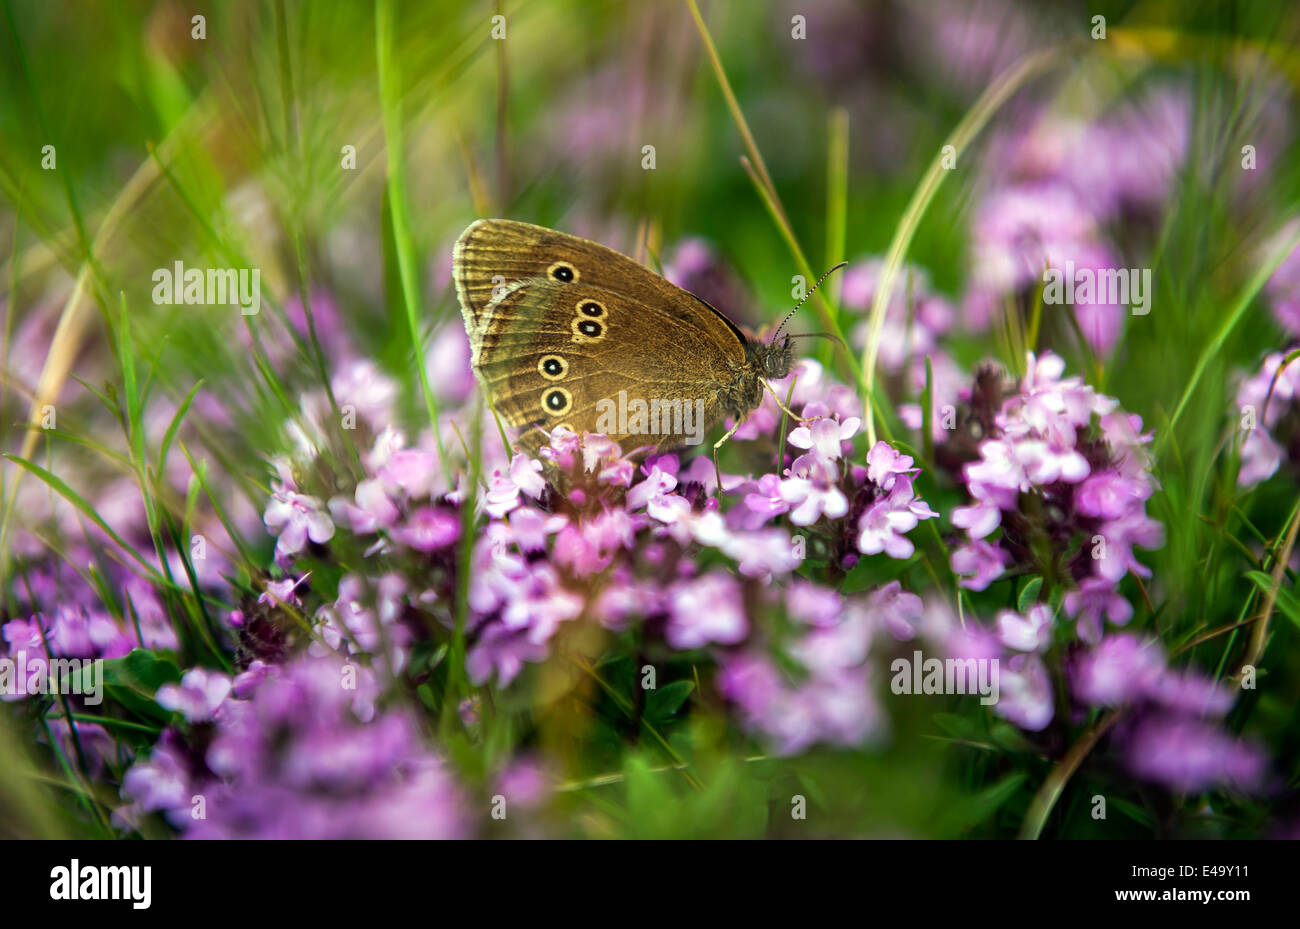 Female Ringlet Butterfly on Beacon Hill, Hampshire, UK - Stock Image